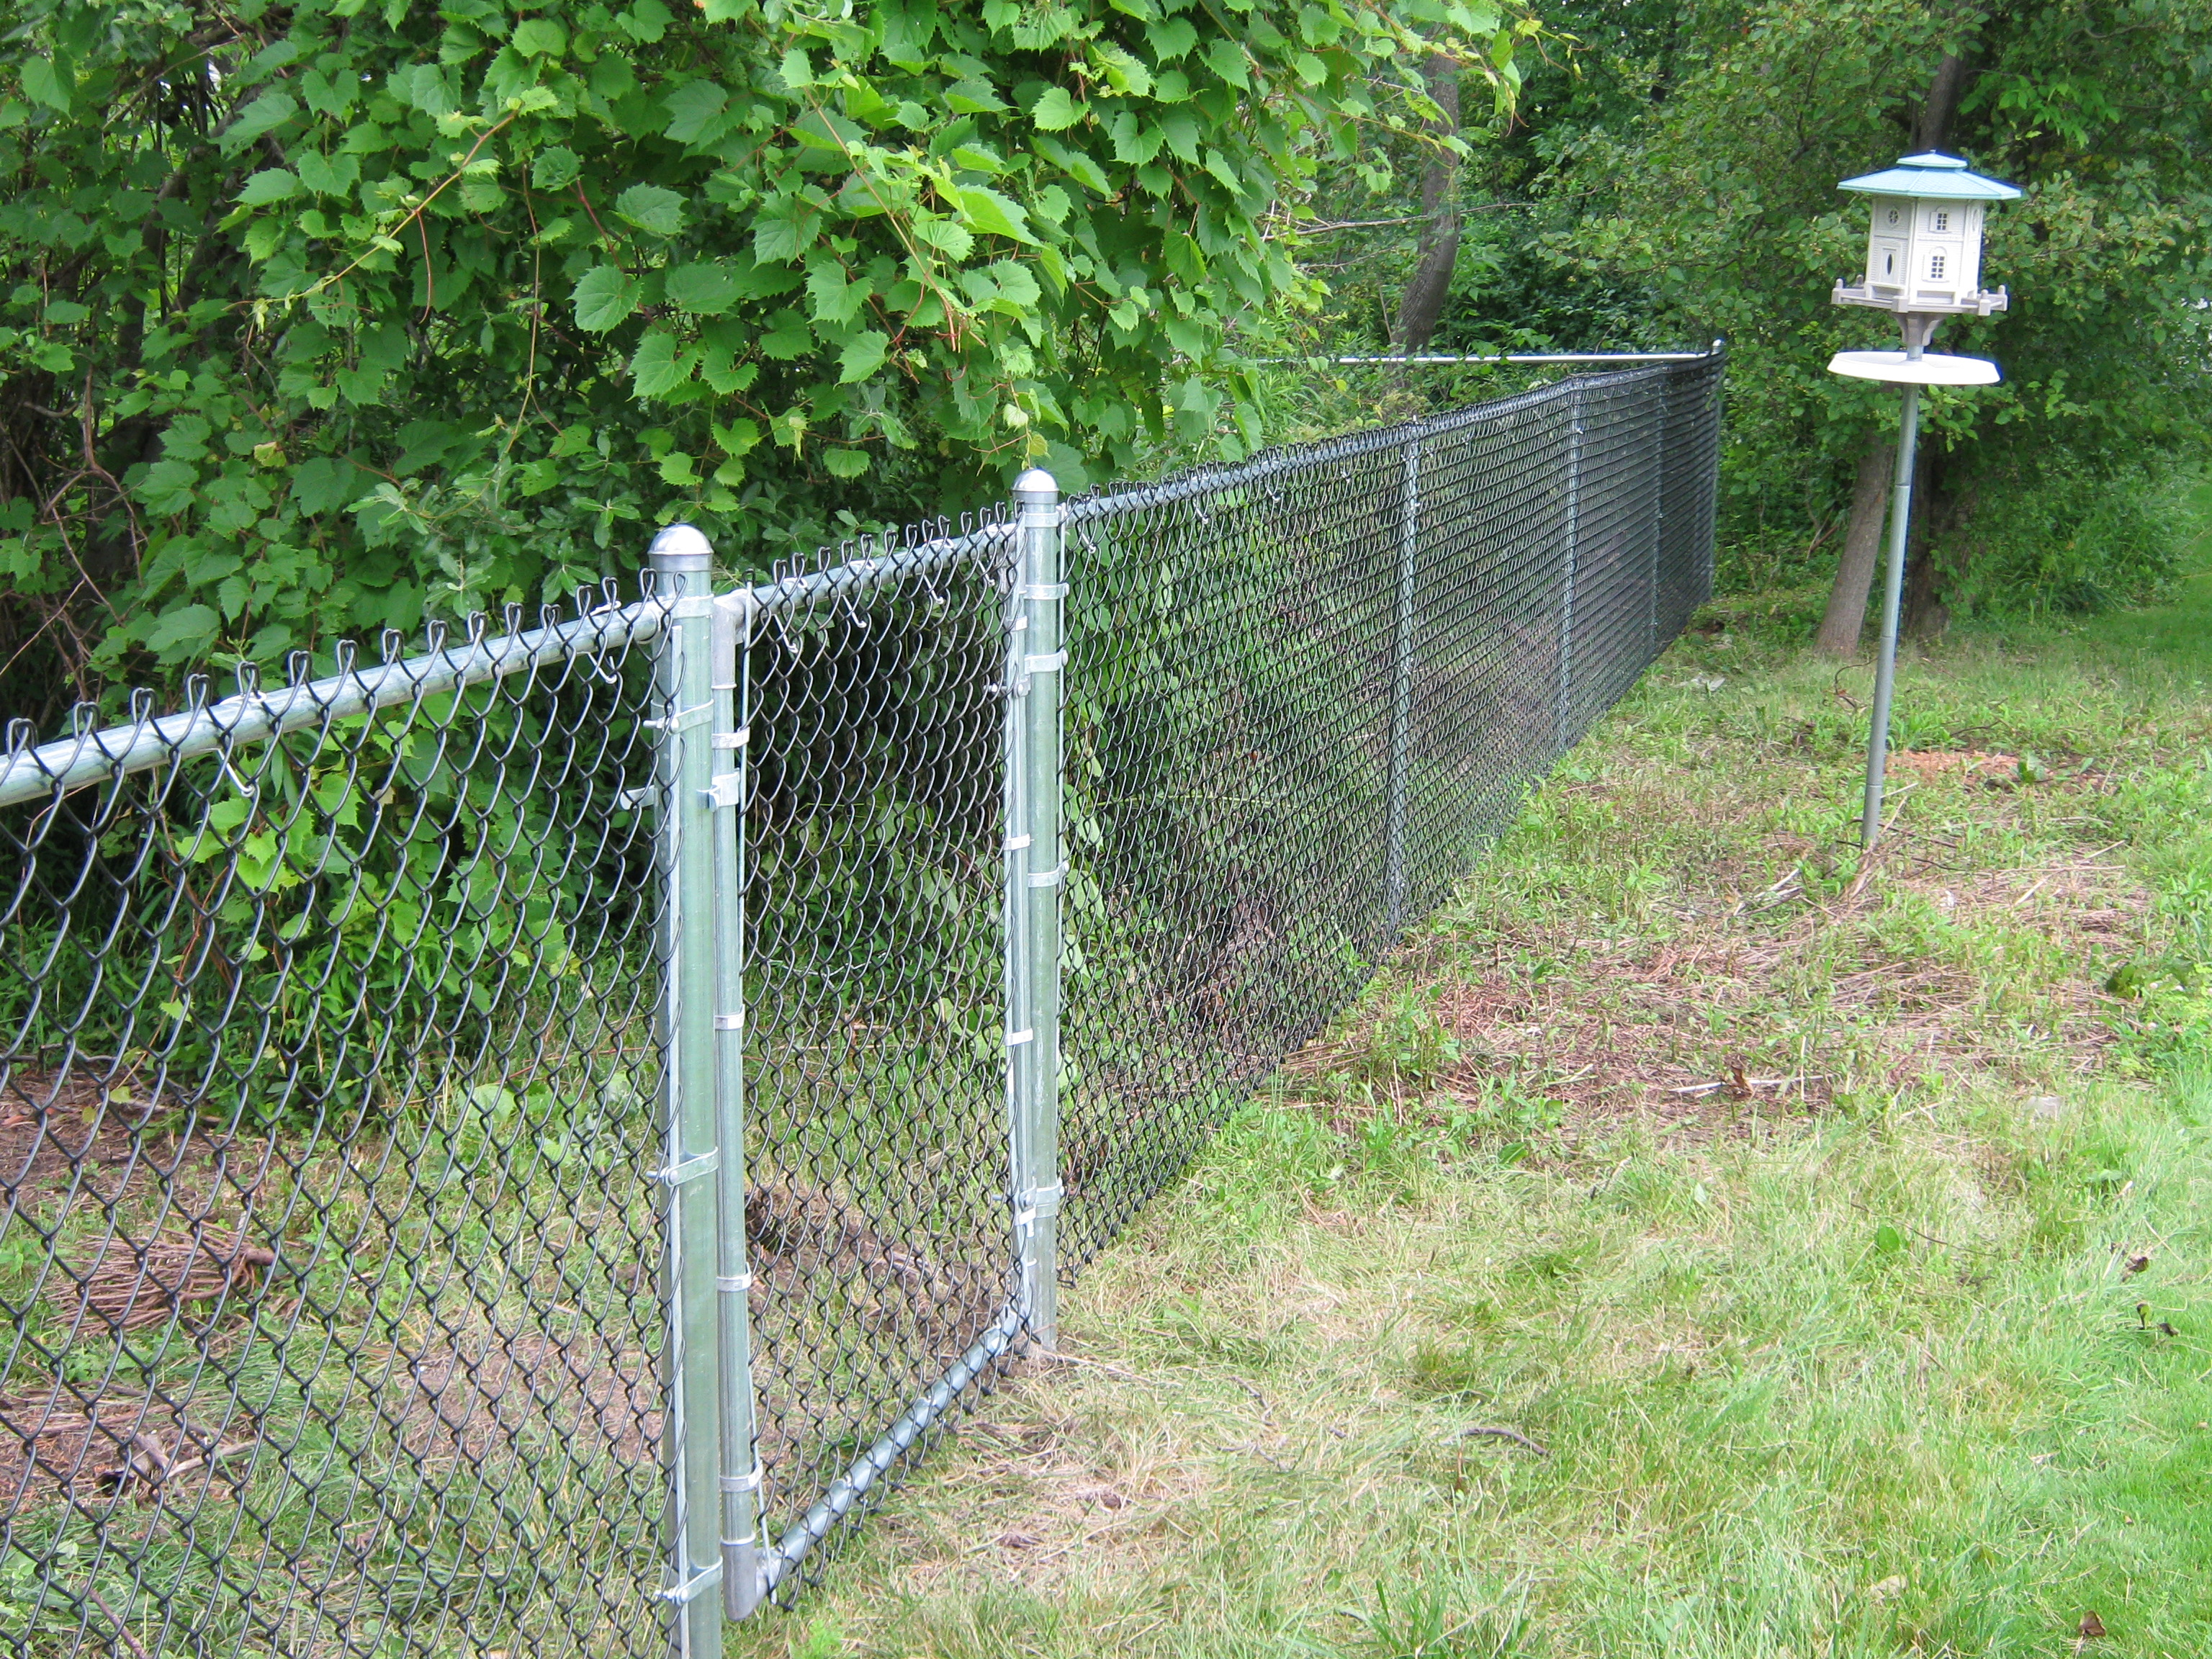 2 Chain Link Fencing Unlimited Fencing